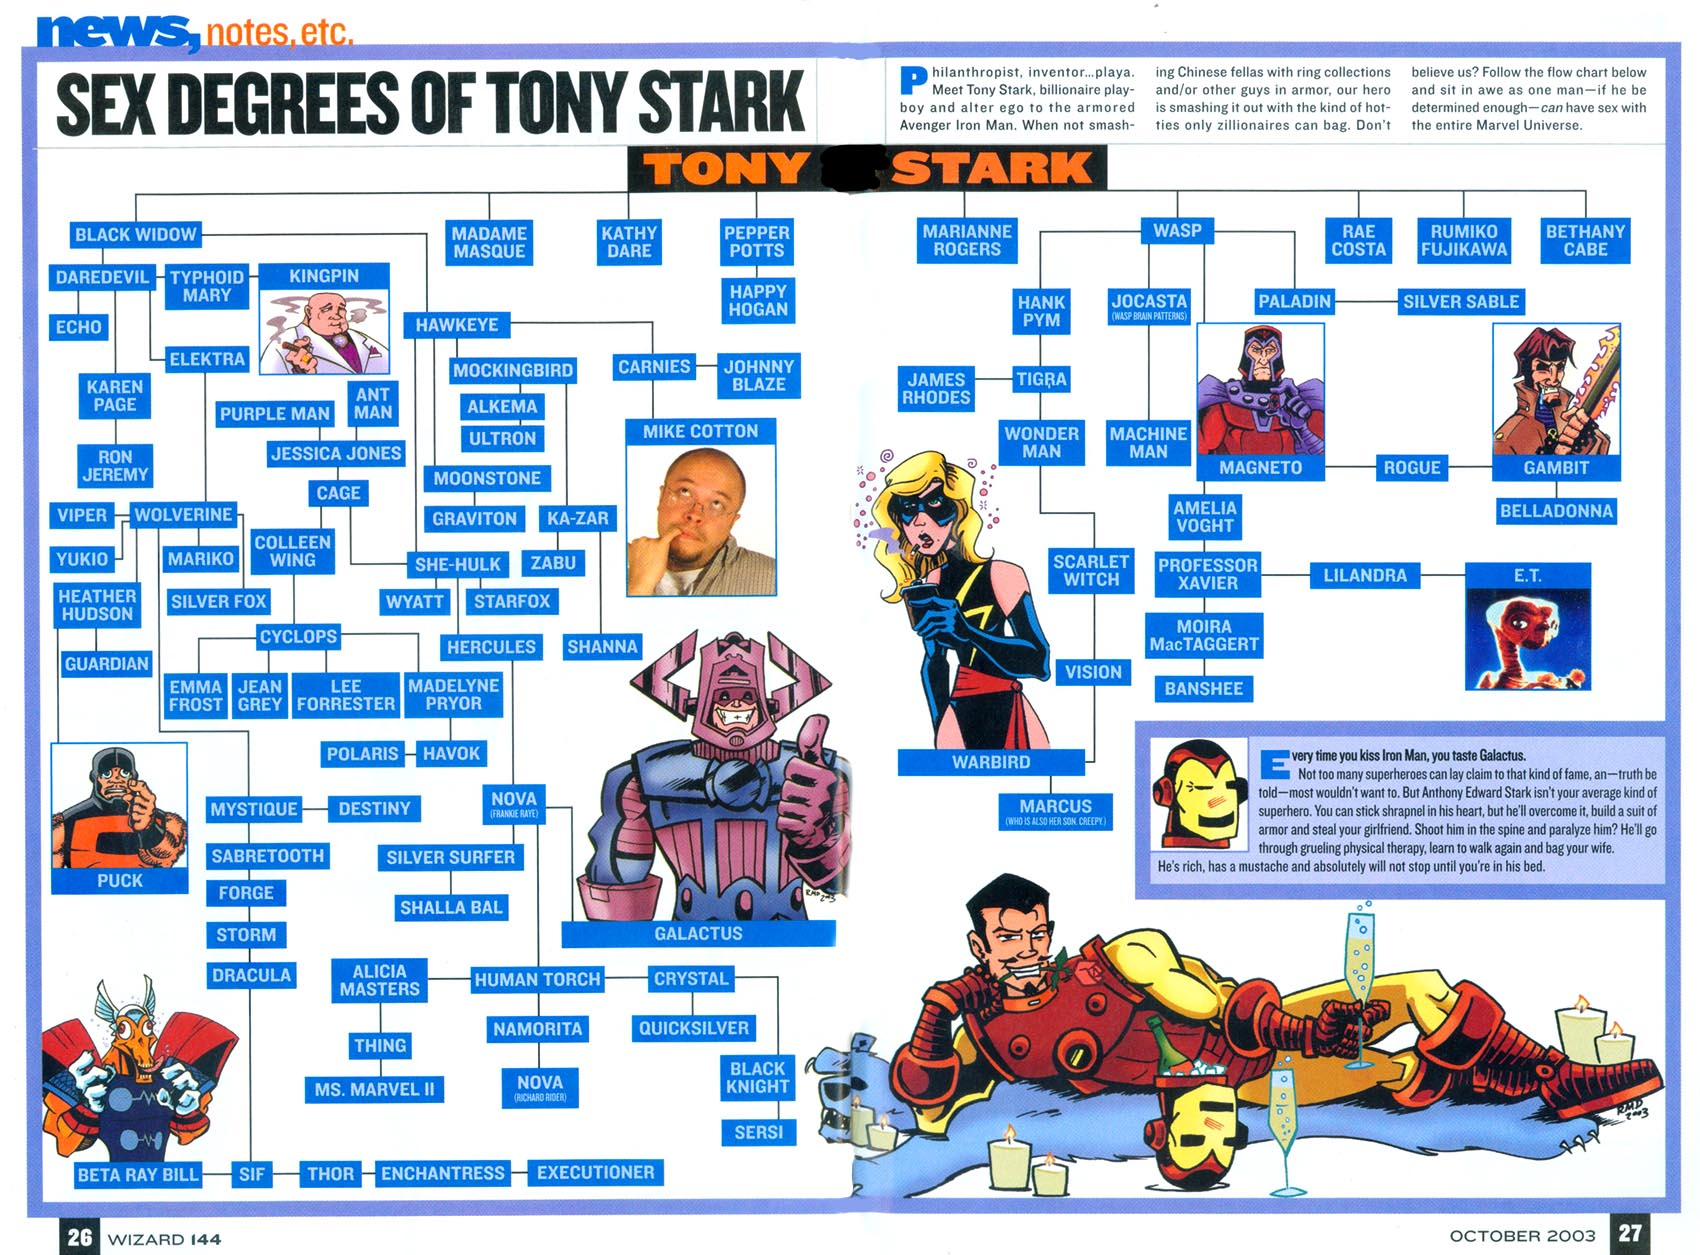 iron man spread